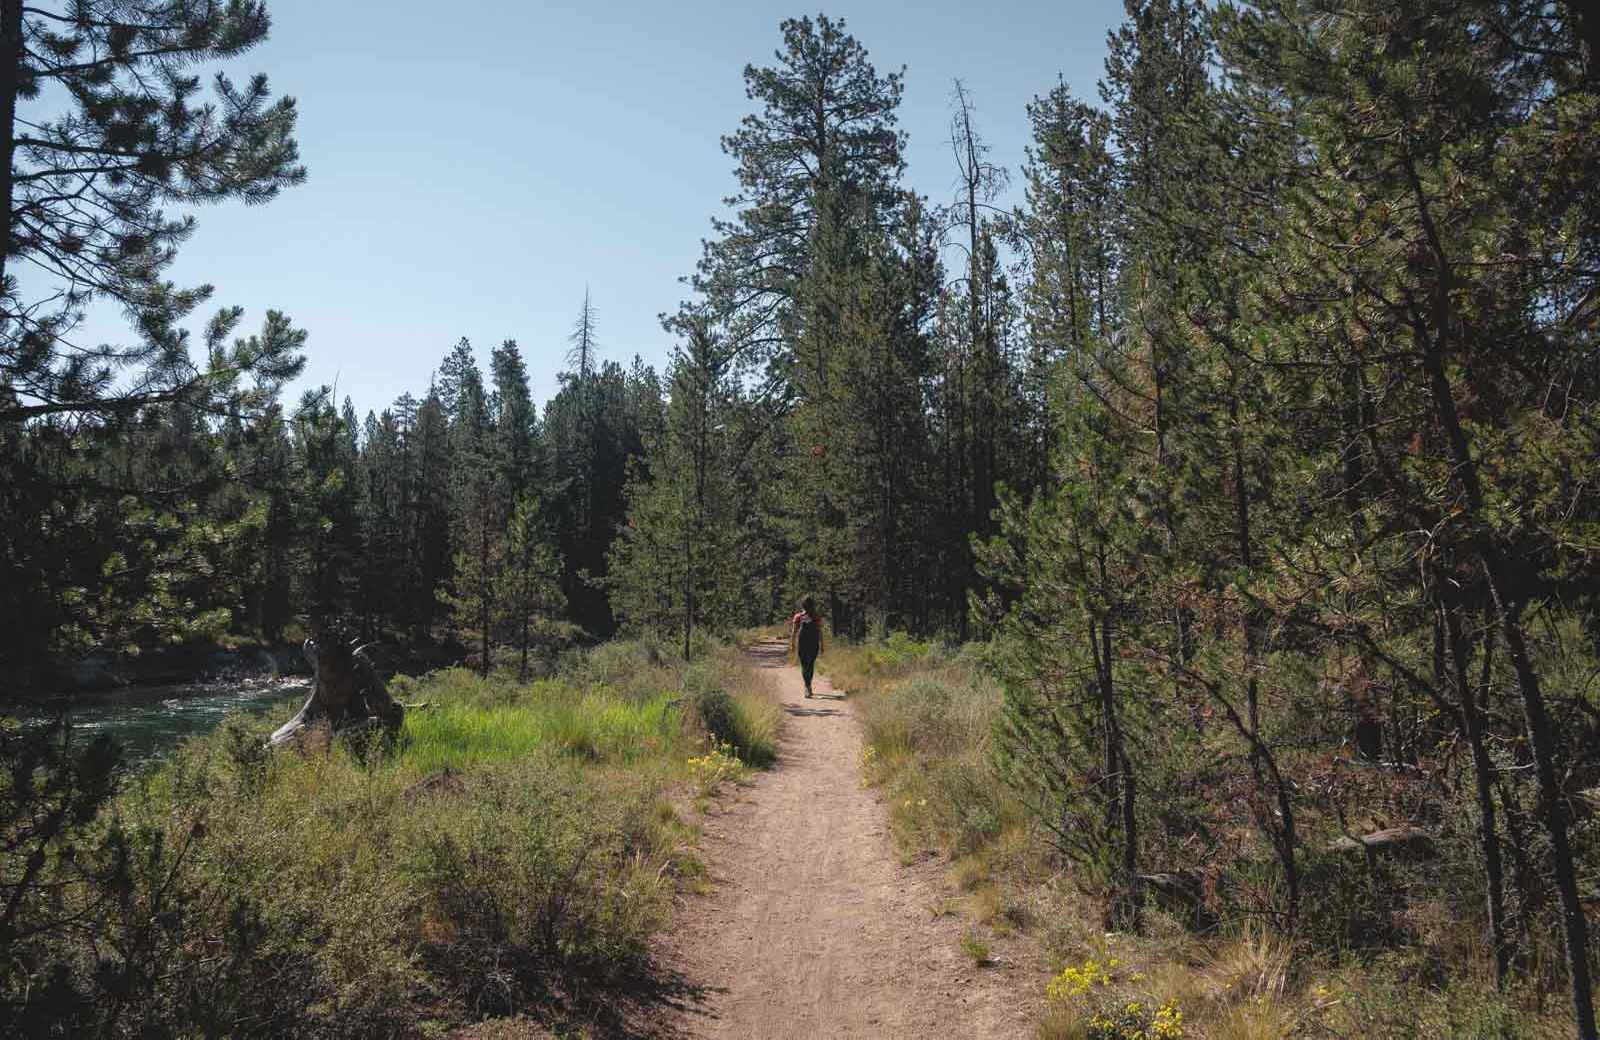 The hiking trails at LaPine State Park are fun and beautiful!